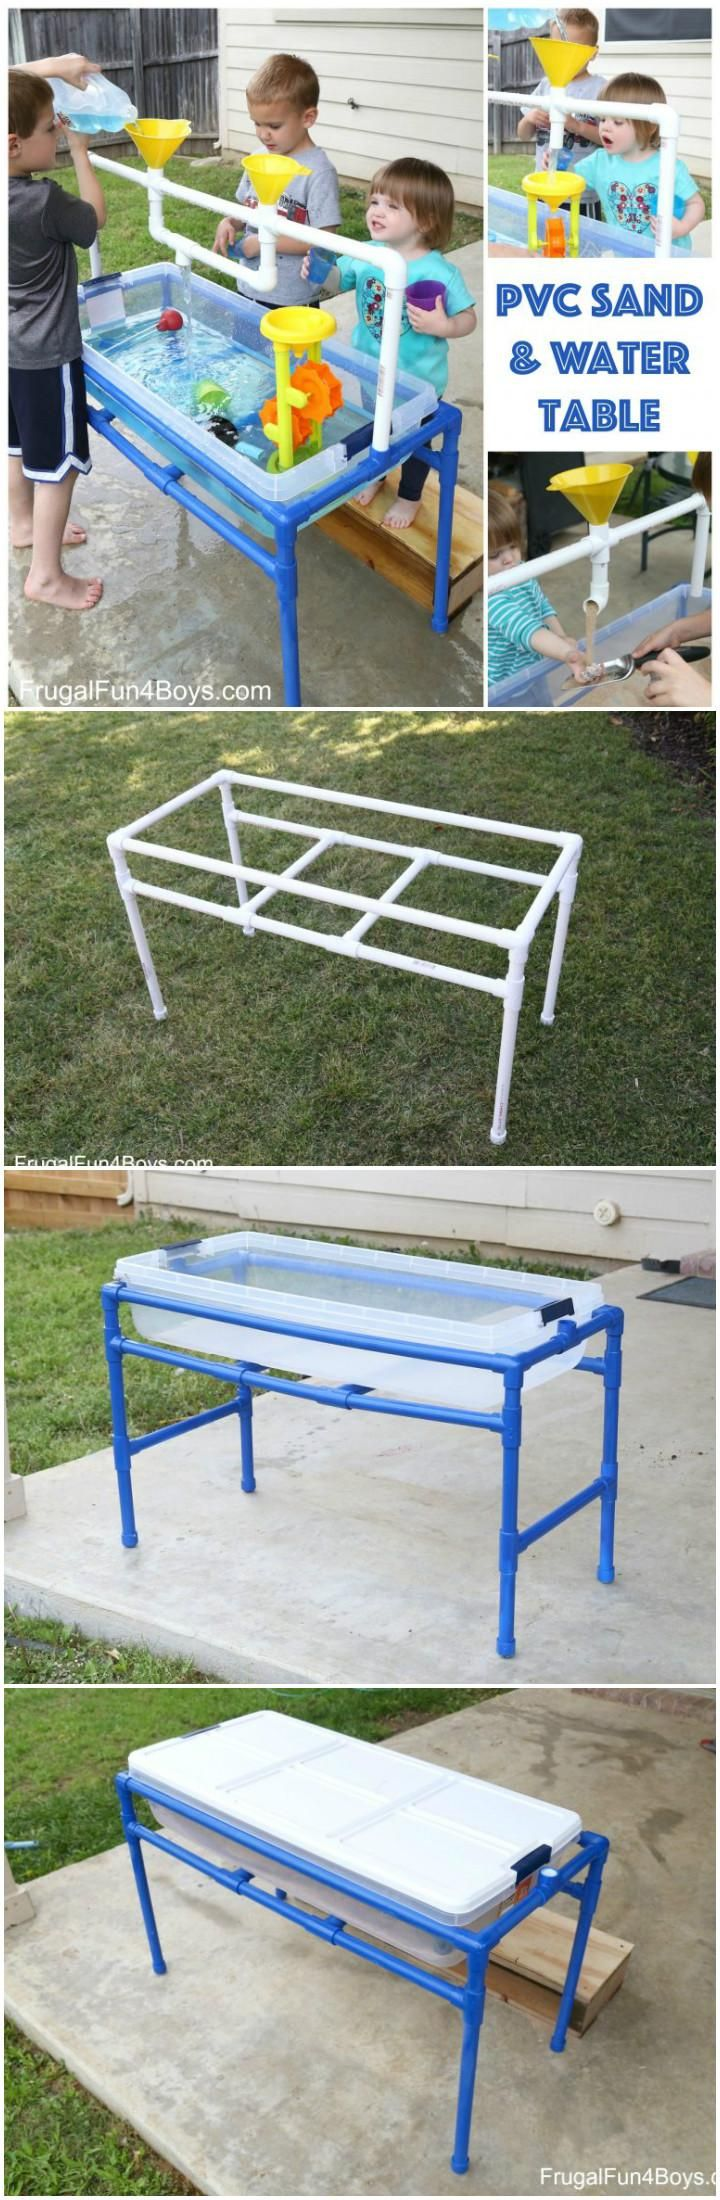 Homemade PVC Pipe Water and Sand Table - 60+ DIY Sandbox Ideas and Projects for Kids - Page 2 of 10 - DIY & Crafts